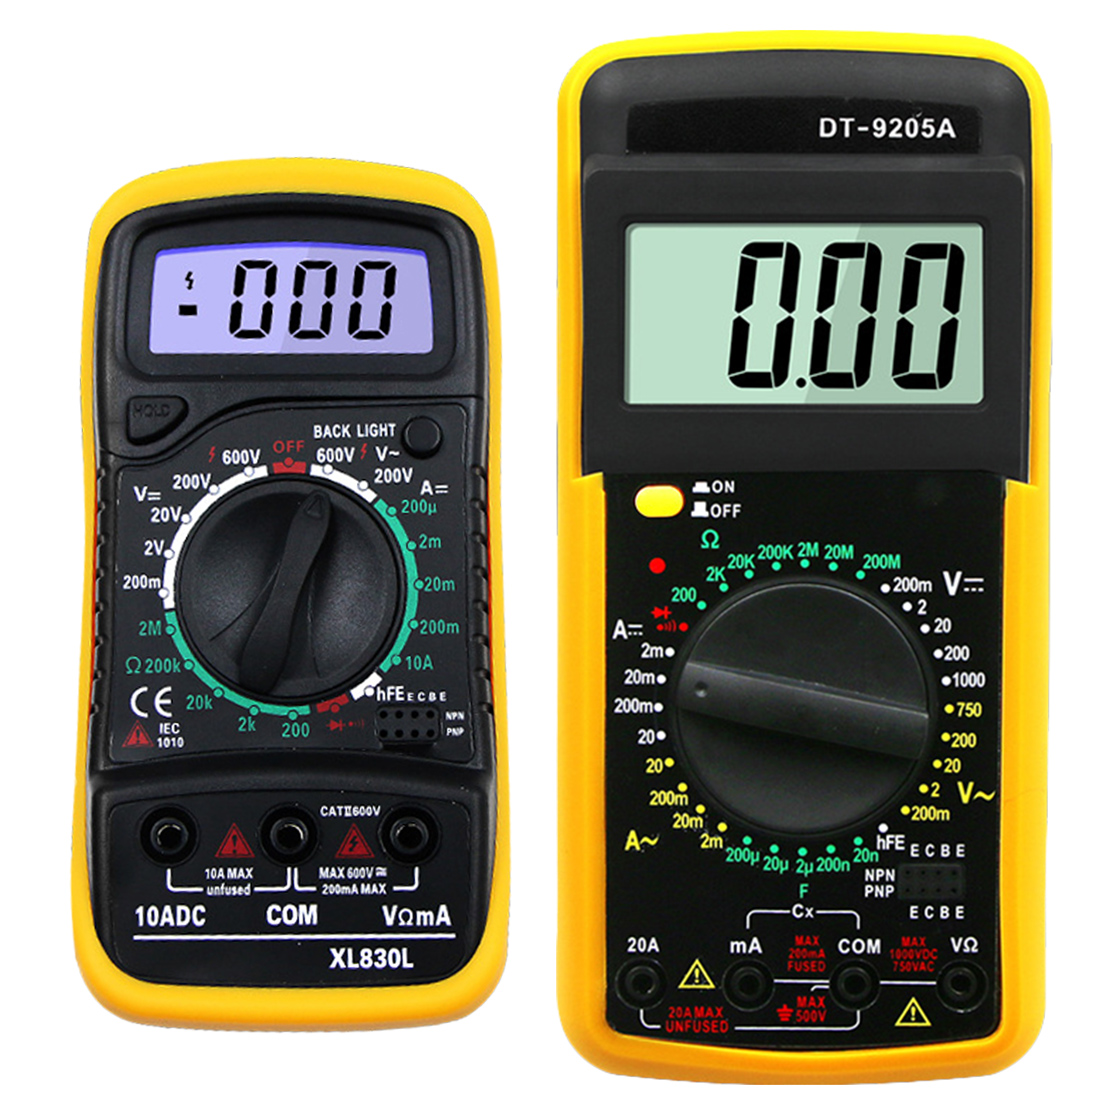 Handheld LCD Multimer Digital Multimeter Backlight AC/DC Ammeter Voltmeter Ohm Tester Meter XL830L/DT-9205A цена 2017